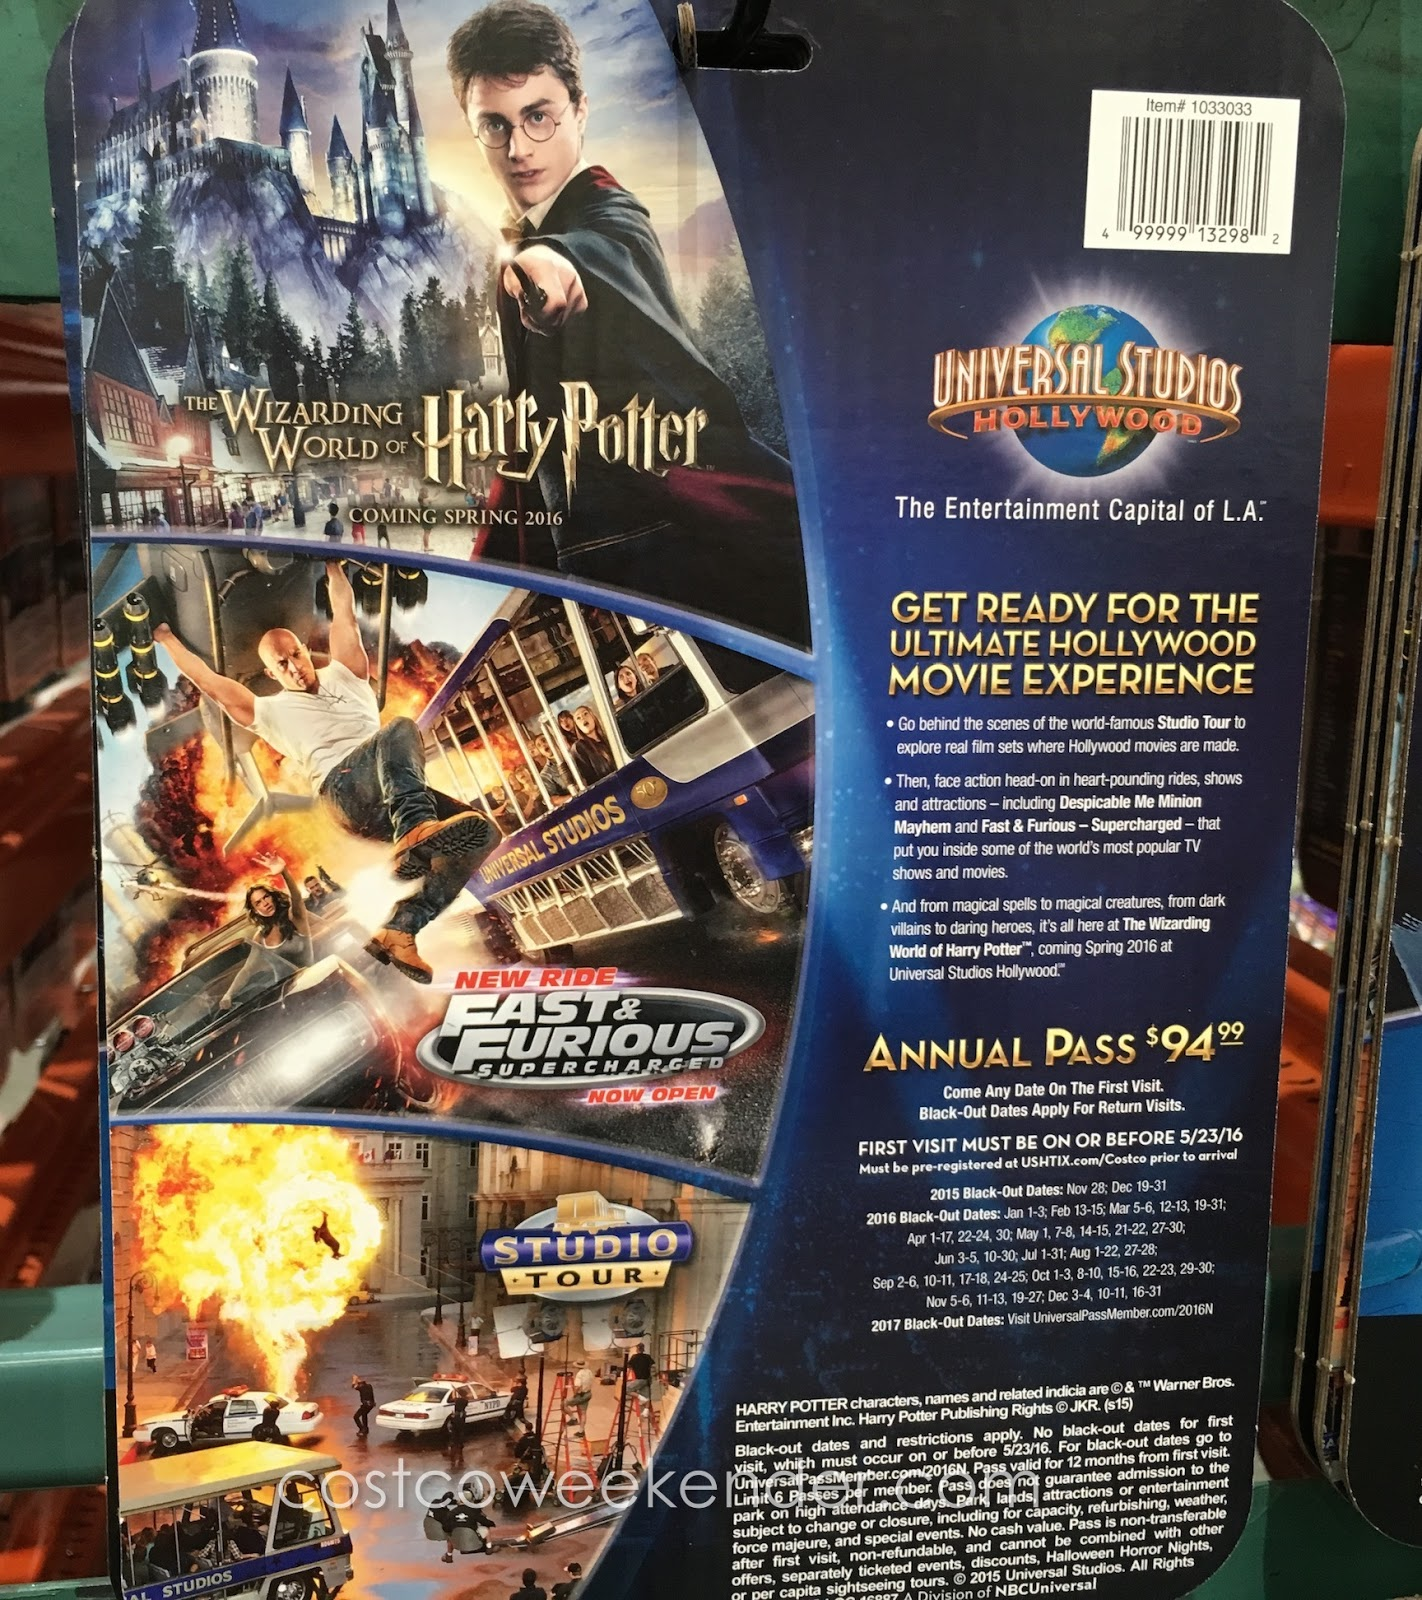 Aug 29,  · Dates of use first must costco ca help anyone know how much the universal studios annual like $ for regular pass, $ vip pass jan 9, in .